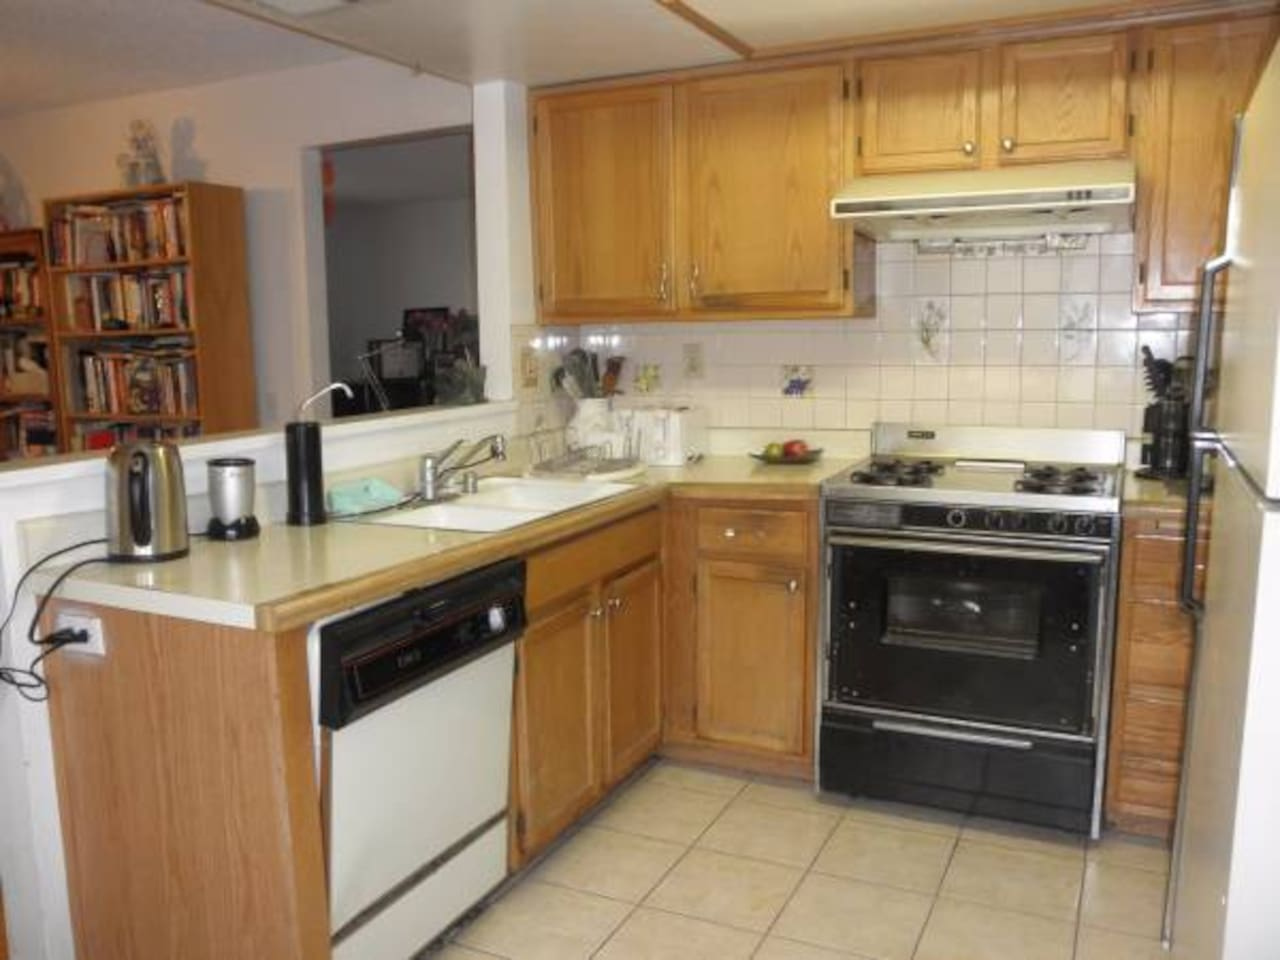 Kitchen is a place where guests meet for conversation and eating when light cooking are done here for a quick meal.